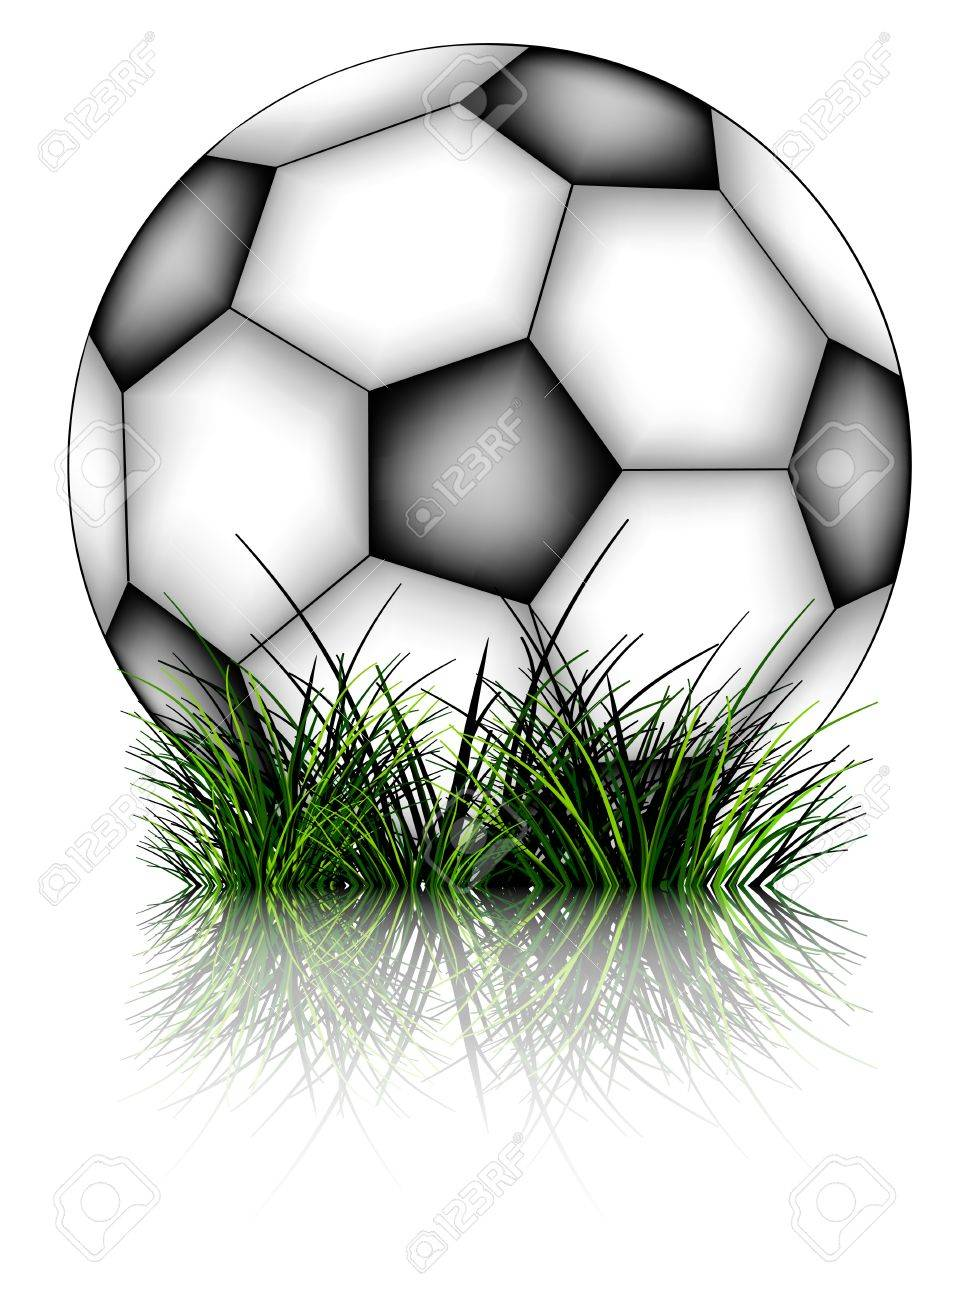 soccer ball and grass reflected against white background. Stock Vector - 10537836